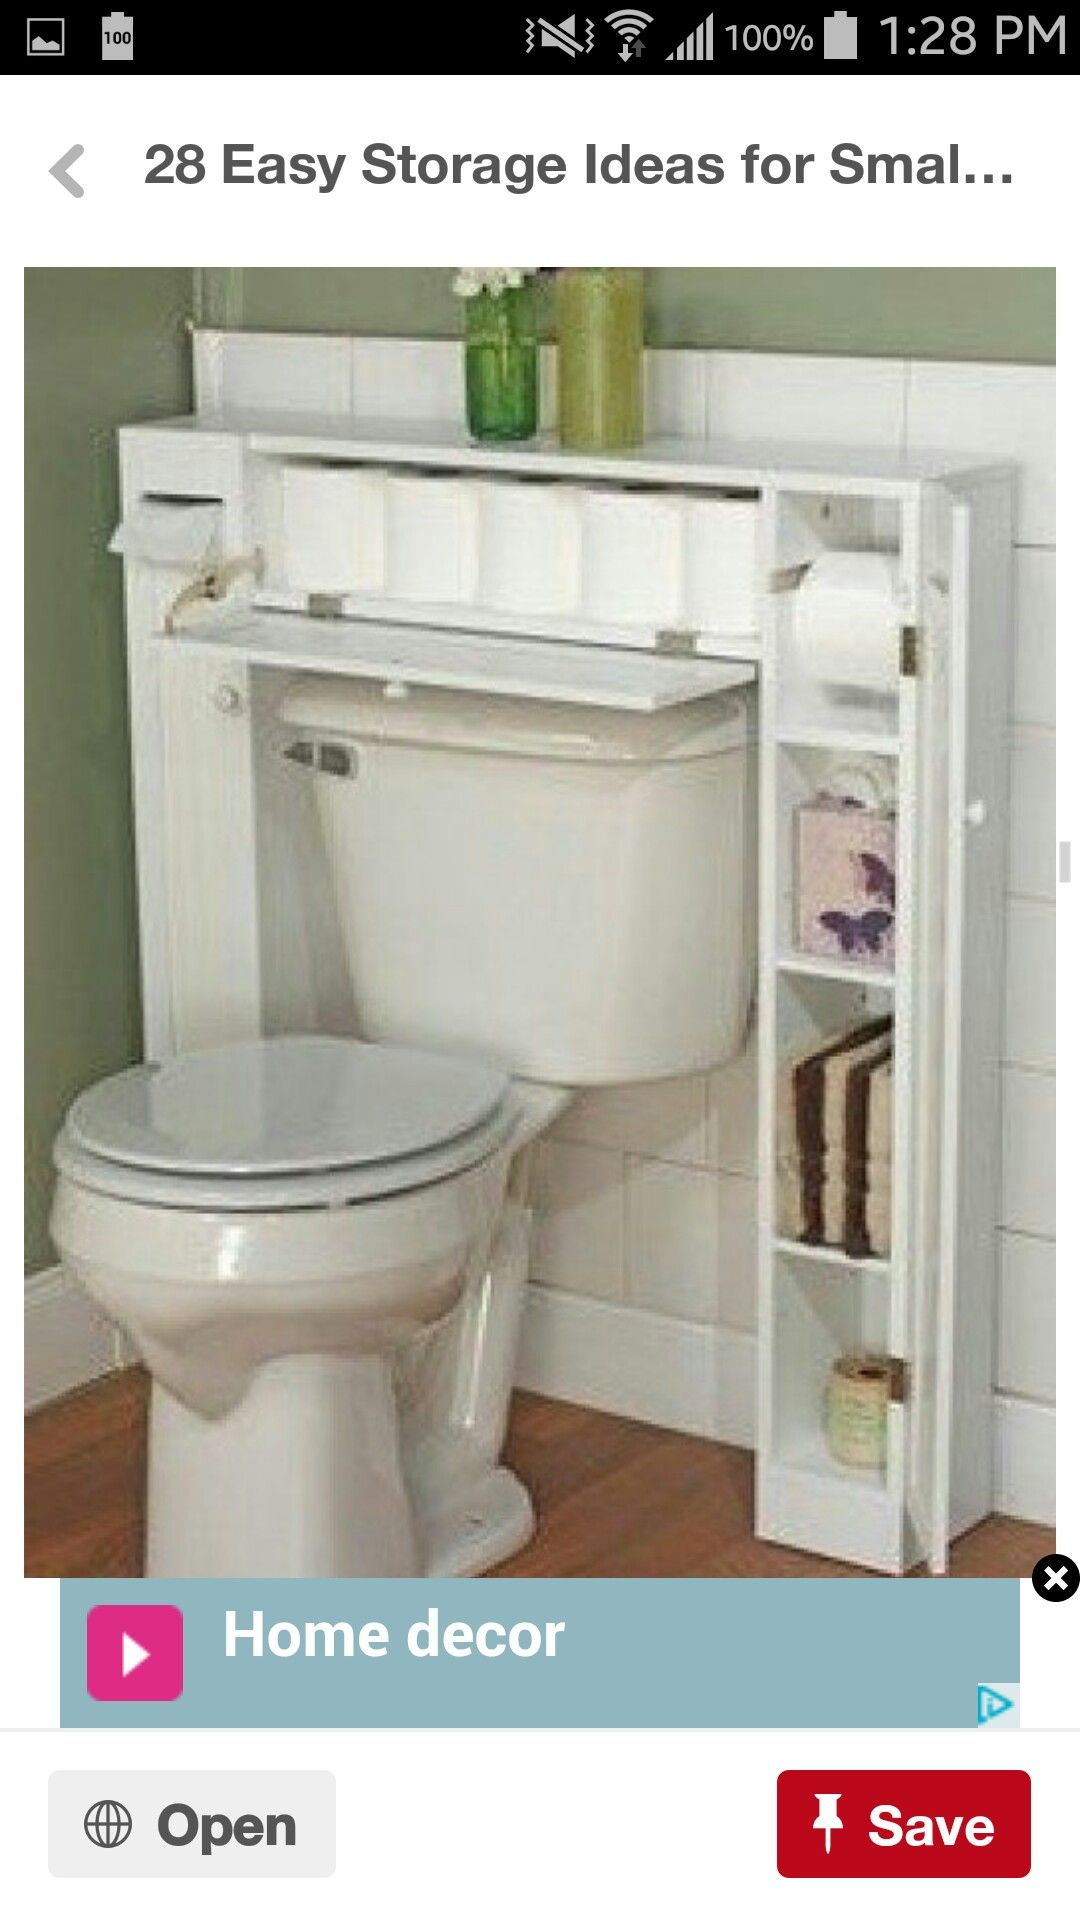 Bathroom storage over toilet - Bathroom Storage Ideas For Small Apartments Secret Drawer For Toilet Roll Click Pic For 44 Easy Organization Ideas For The Home